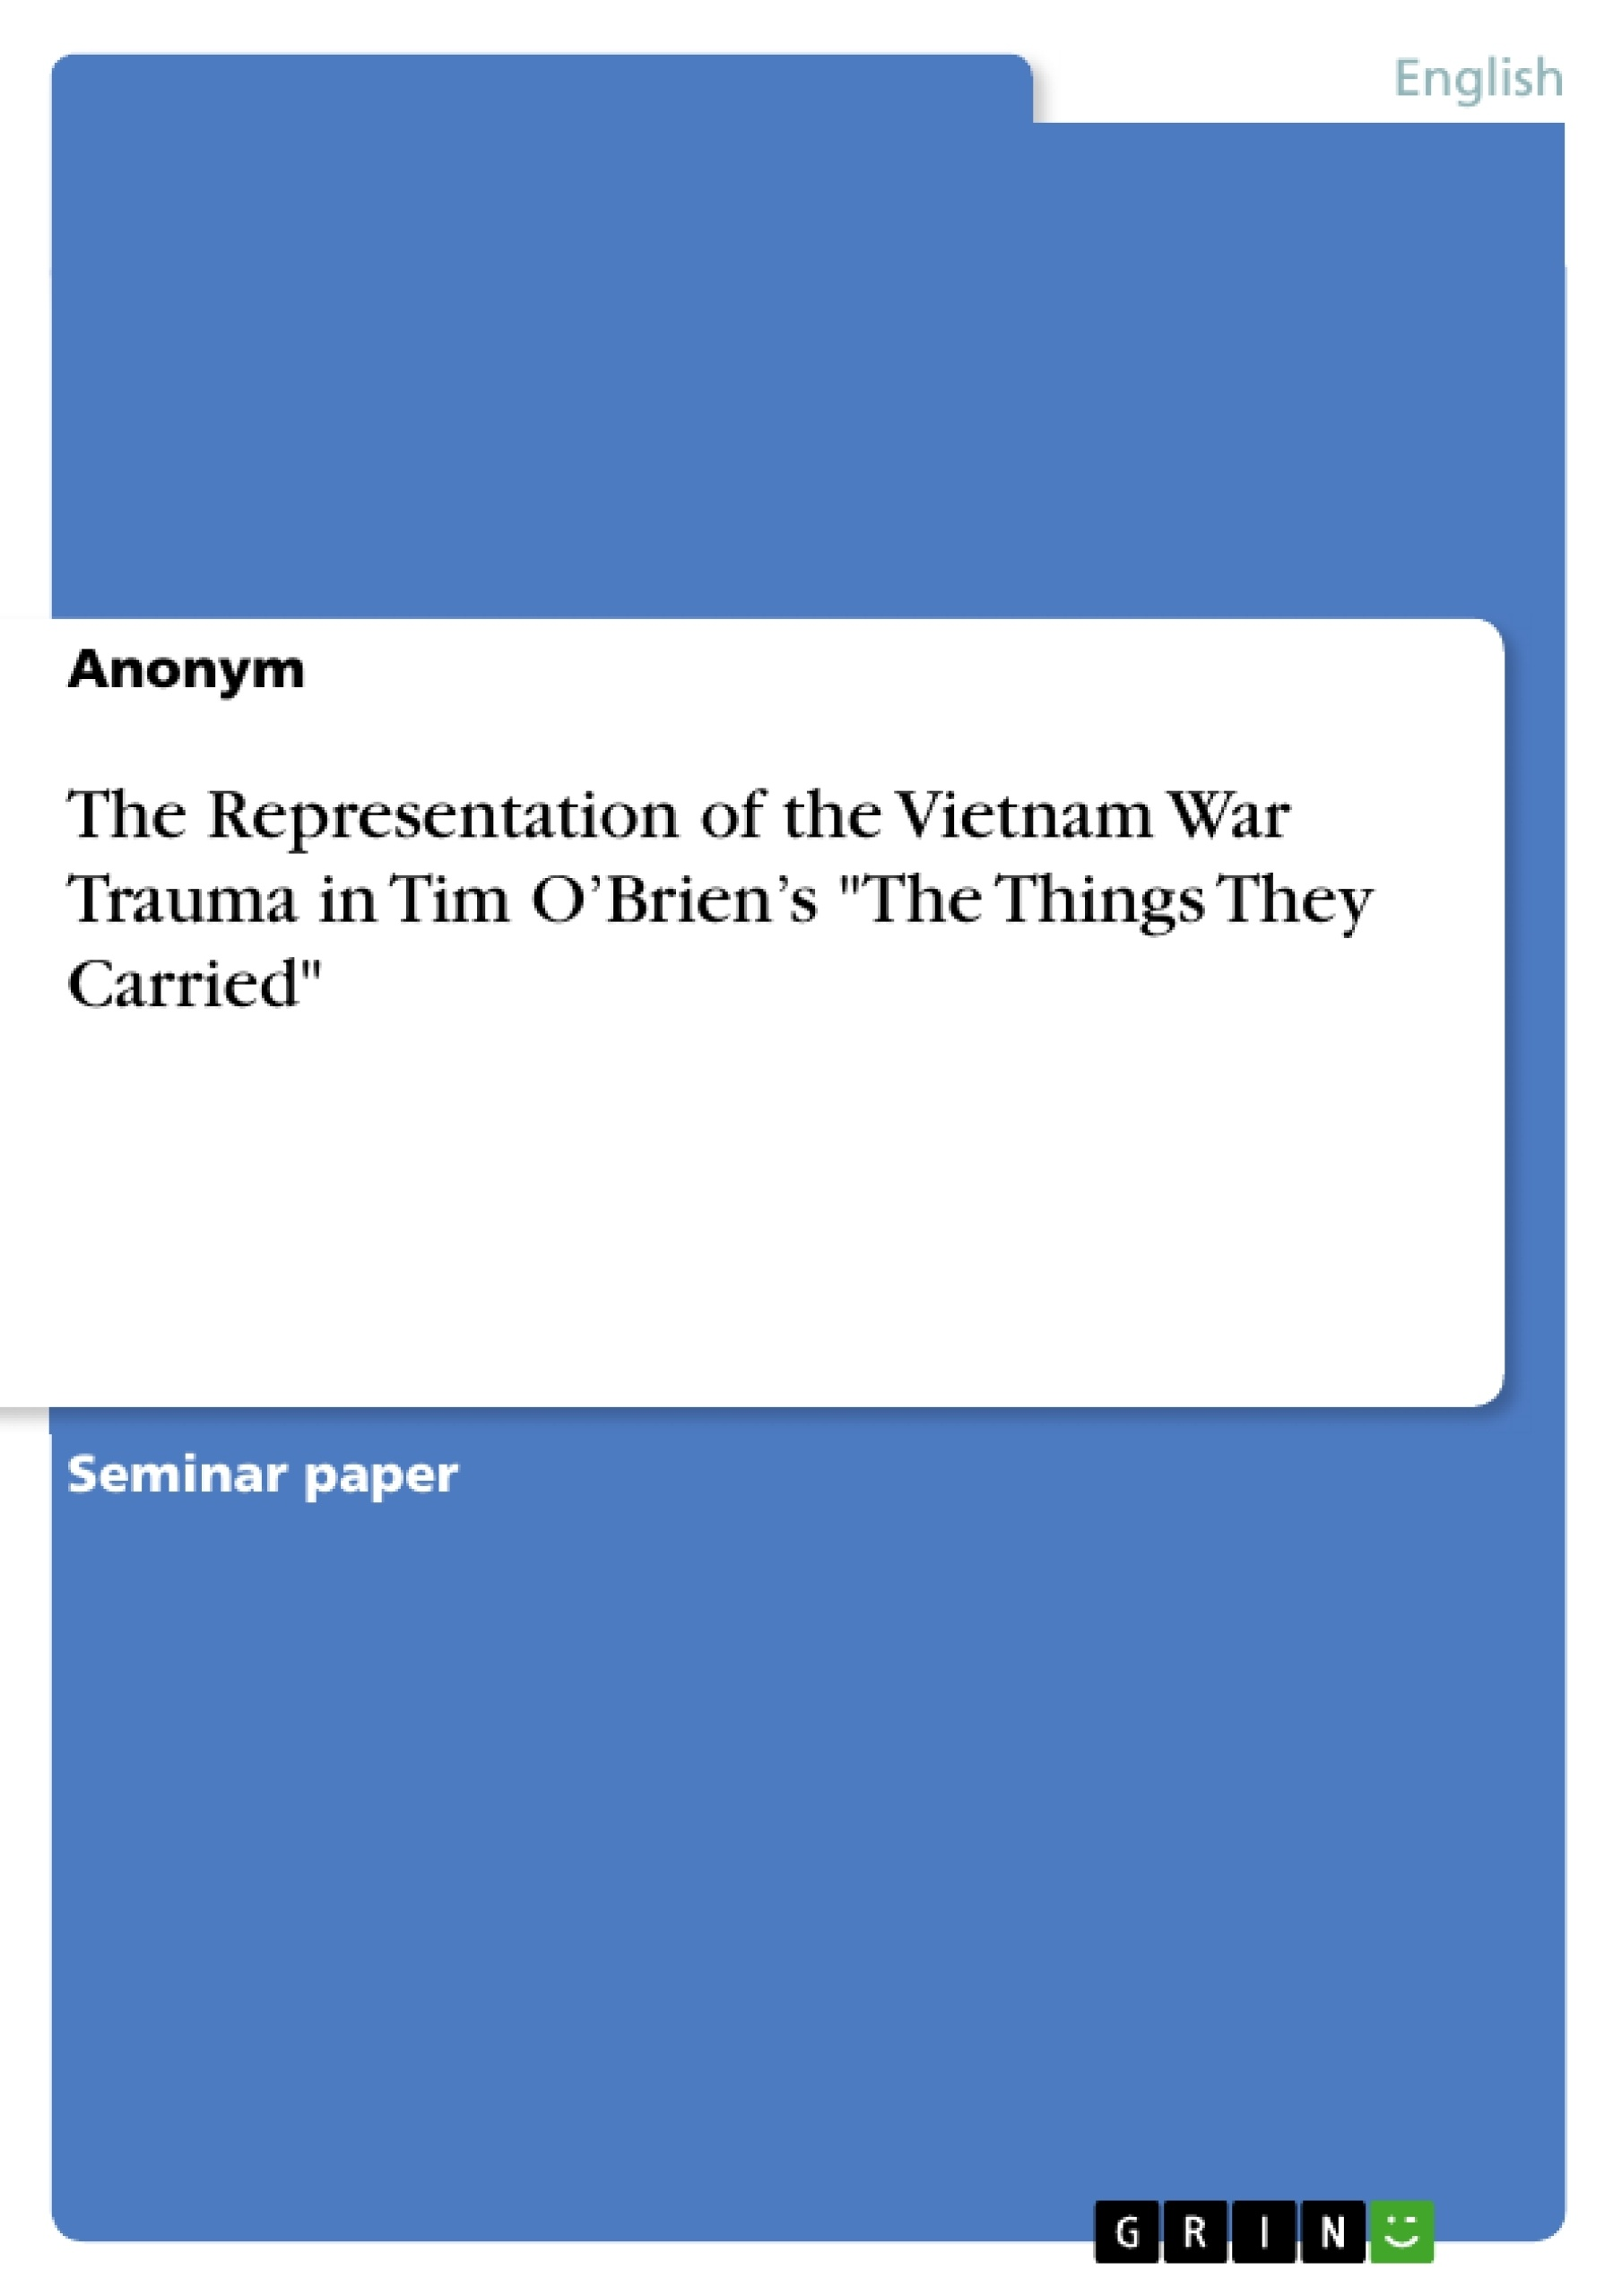 the representation of the vietnam war trauma in tim o brien s the the representation of the vietnam war trauma in tim o brien s the publish your master s thesis bachelor s thesis essay or term paper